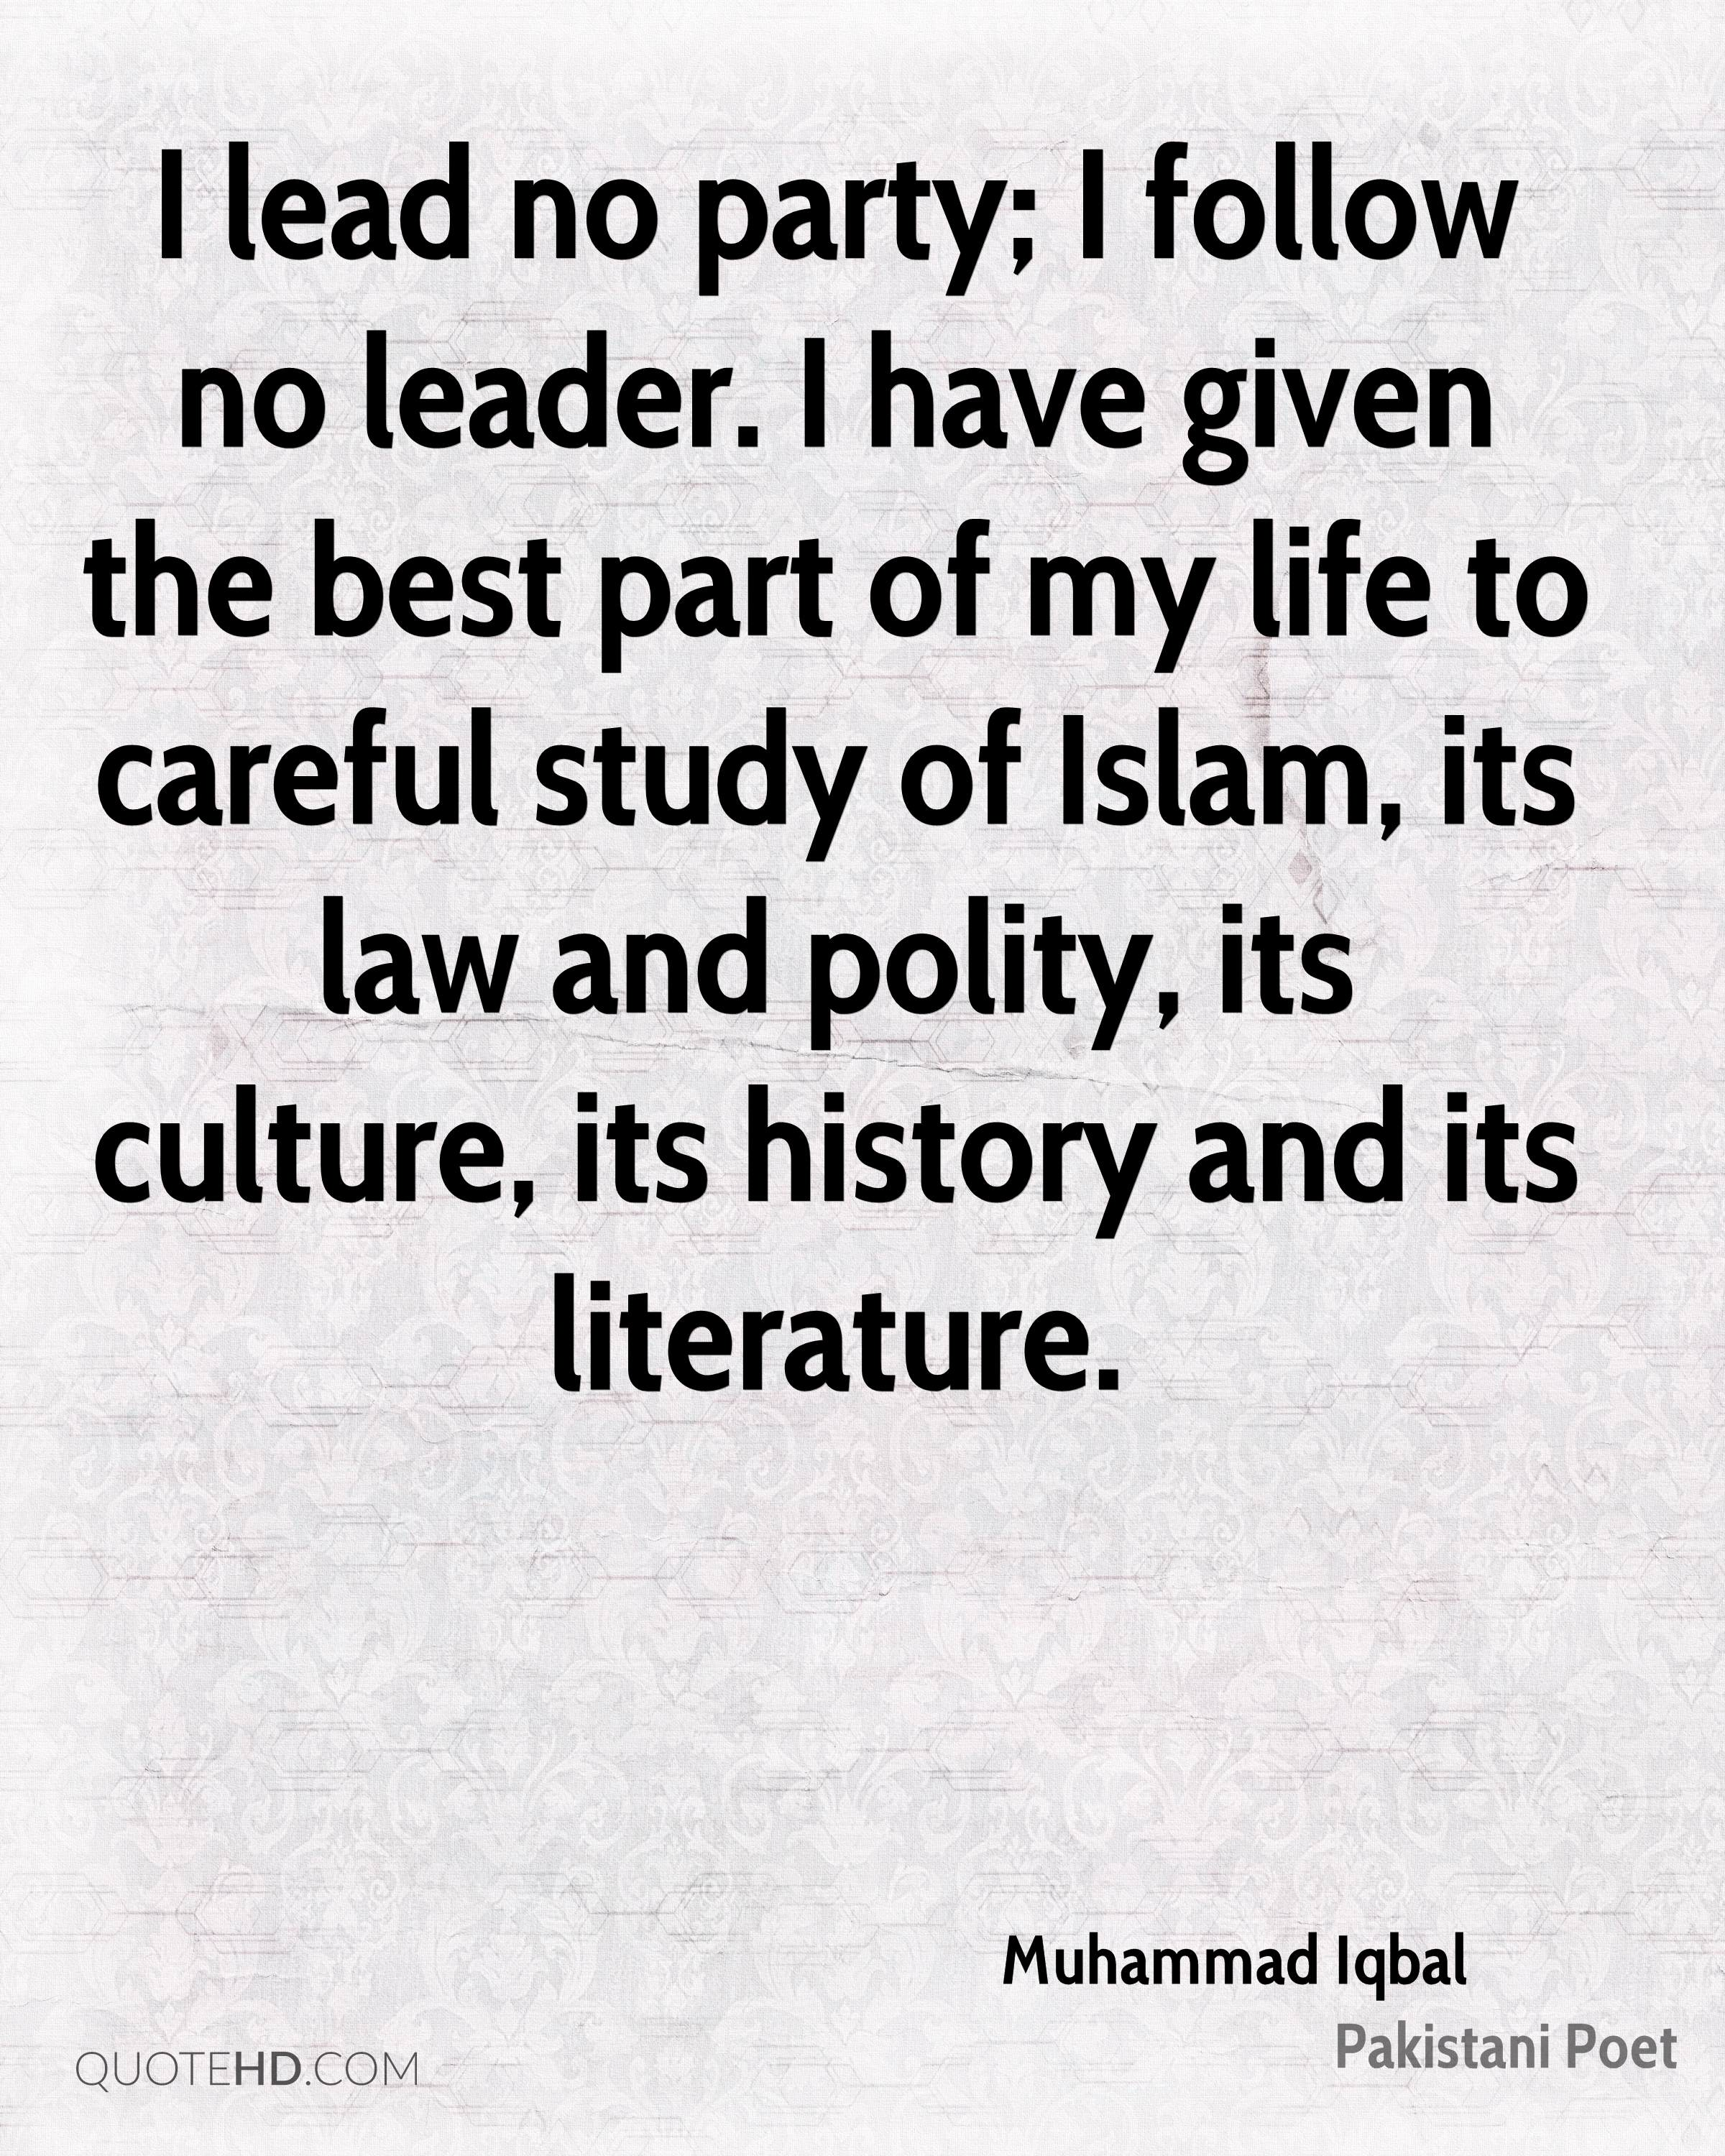 I lead no party; I follow no leader. I have given the best part of my life to careful study of Islam, its law and polity, its culture, its history and its literature.